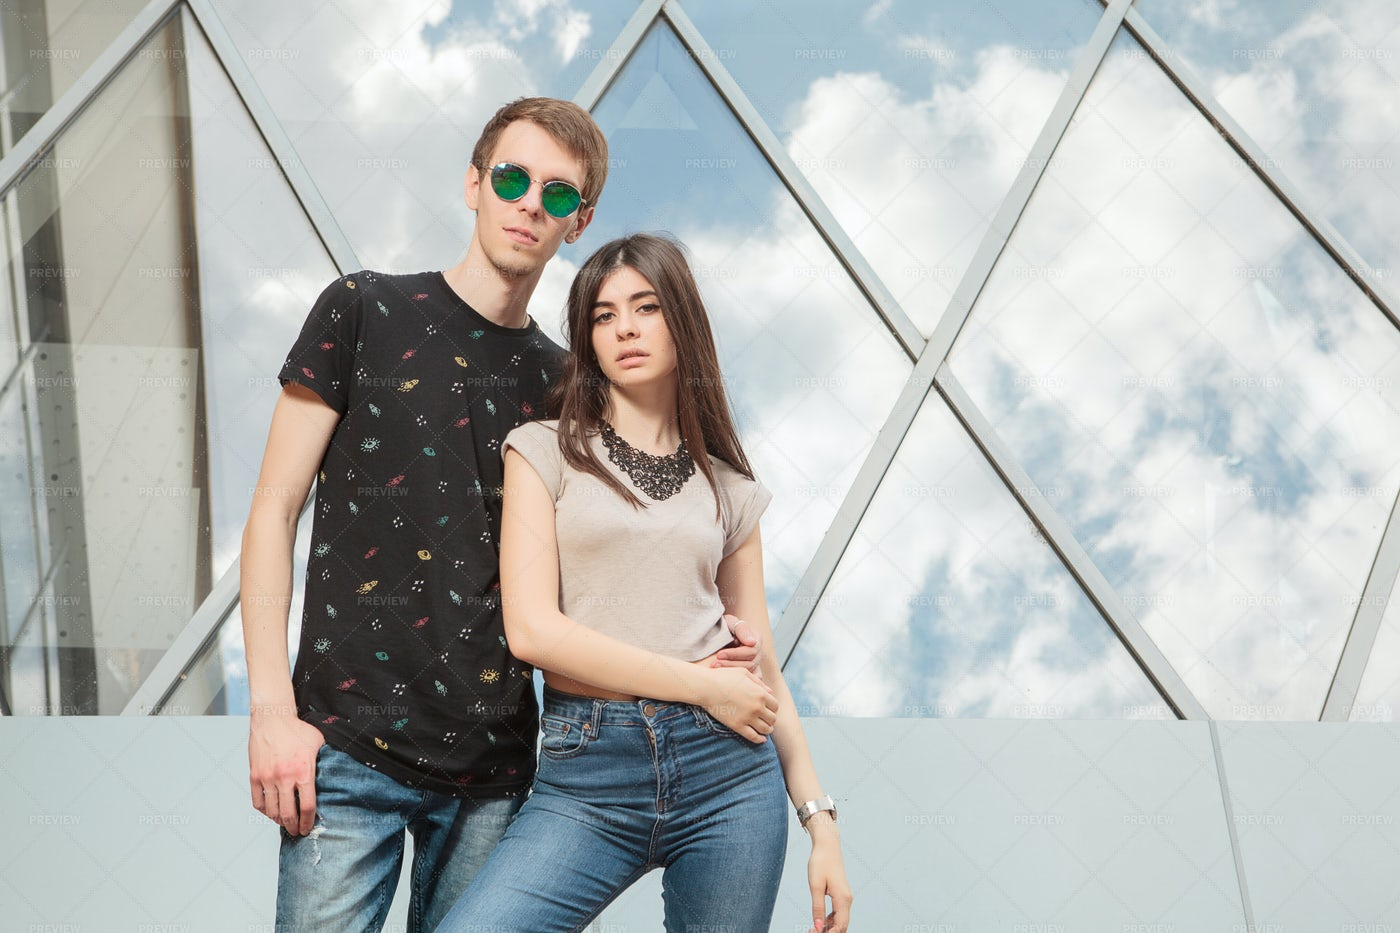 Happy Cool Looking Couple In Jeans: Stock Photos